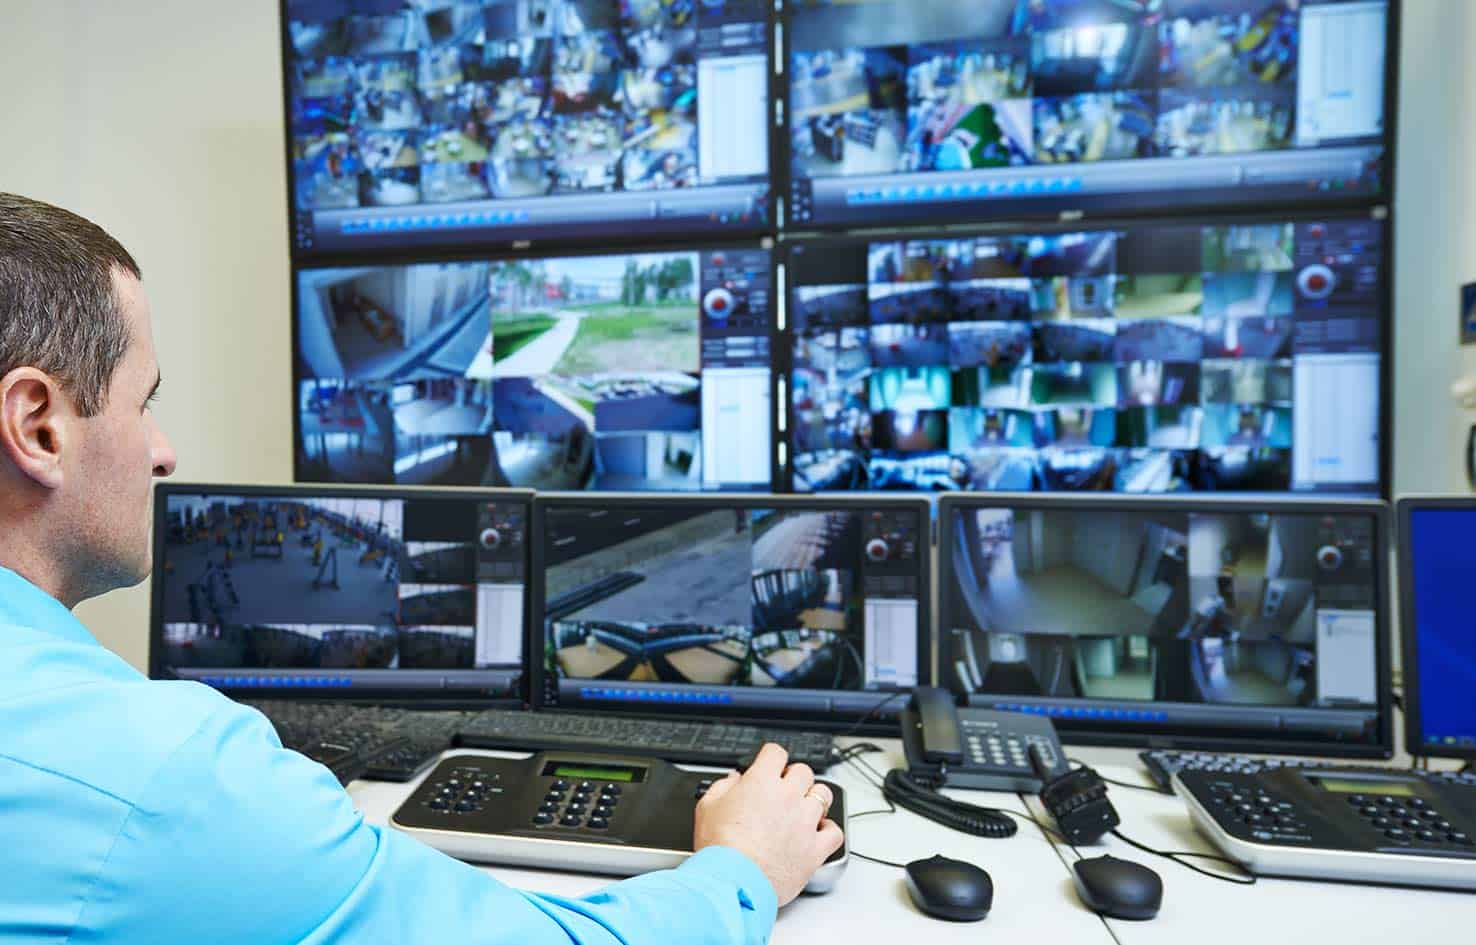 cctv security monitoring